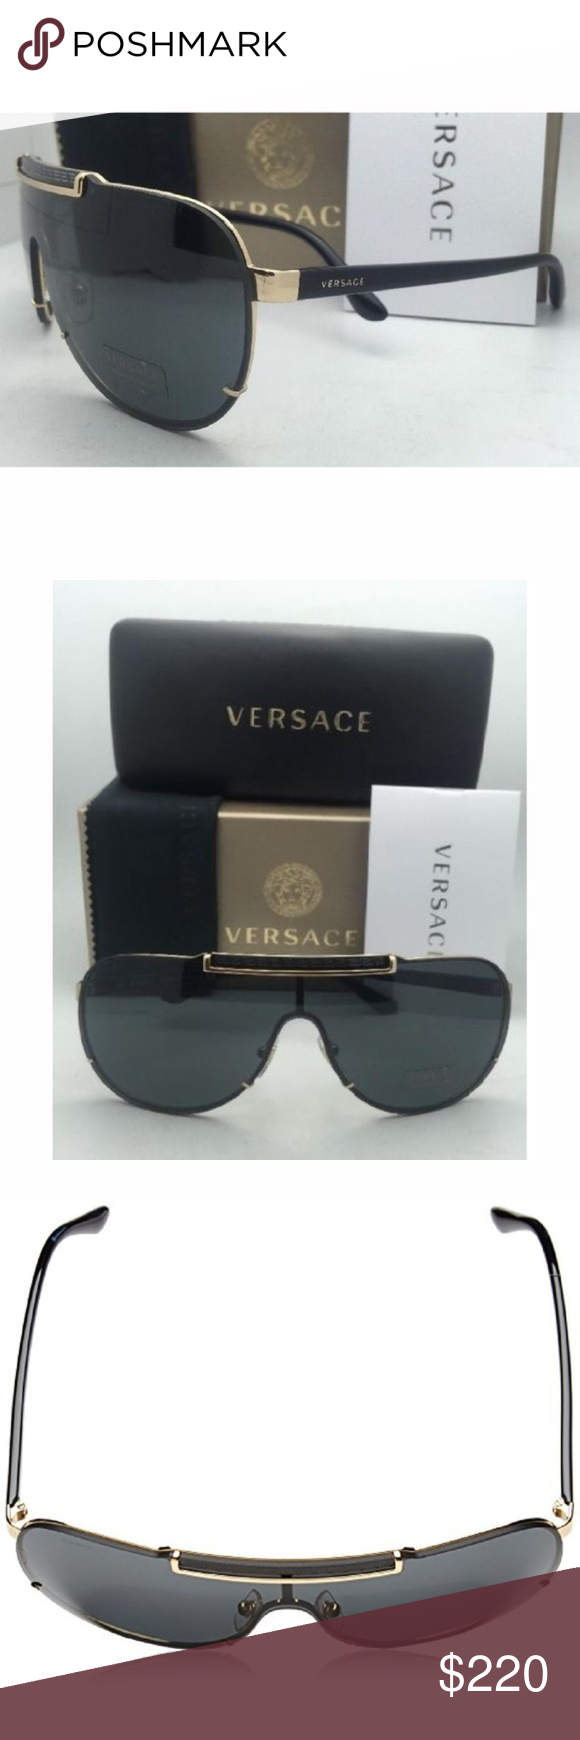 849c002a23c NWT Authentic Gucci Sunglasses 52MM Wayfarer 100% AUTHENTIC   Geniuine    Brand NEW GUCCI Sun Glasses Newest Model   Release! Gender  …